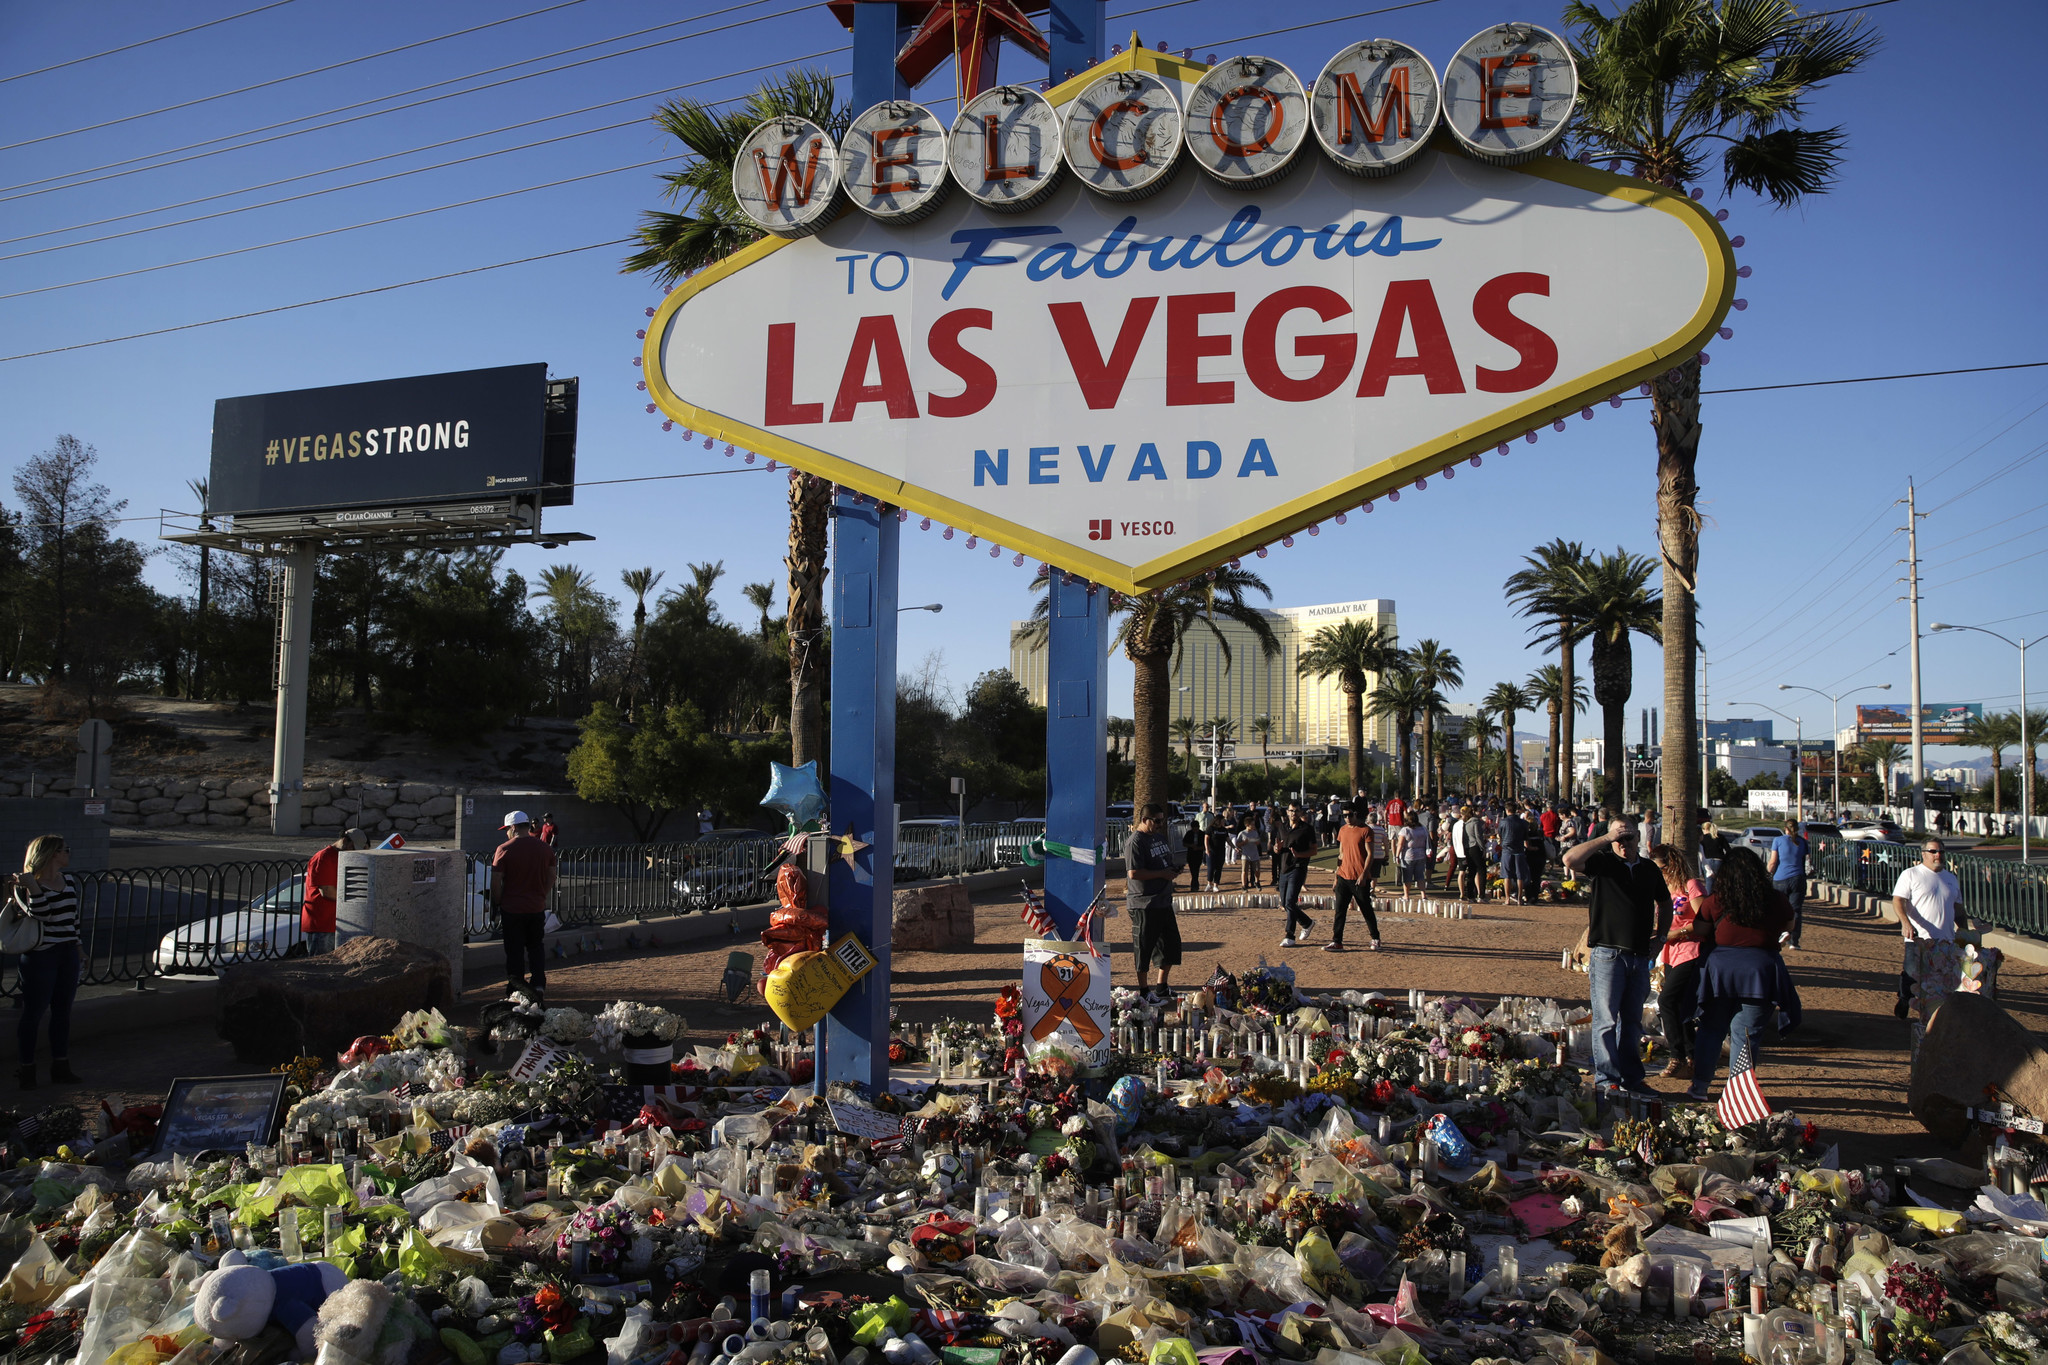 Flowers, candles and other items surround the famous Las Vegas sign at a makeshift memorial for victims of the Oct. 1 mass shooting.